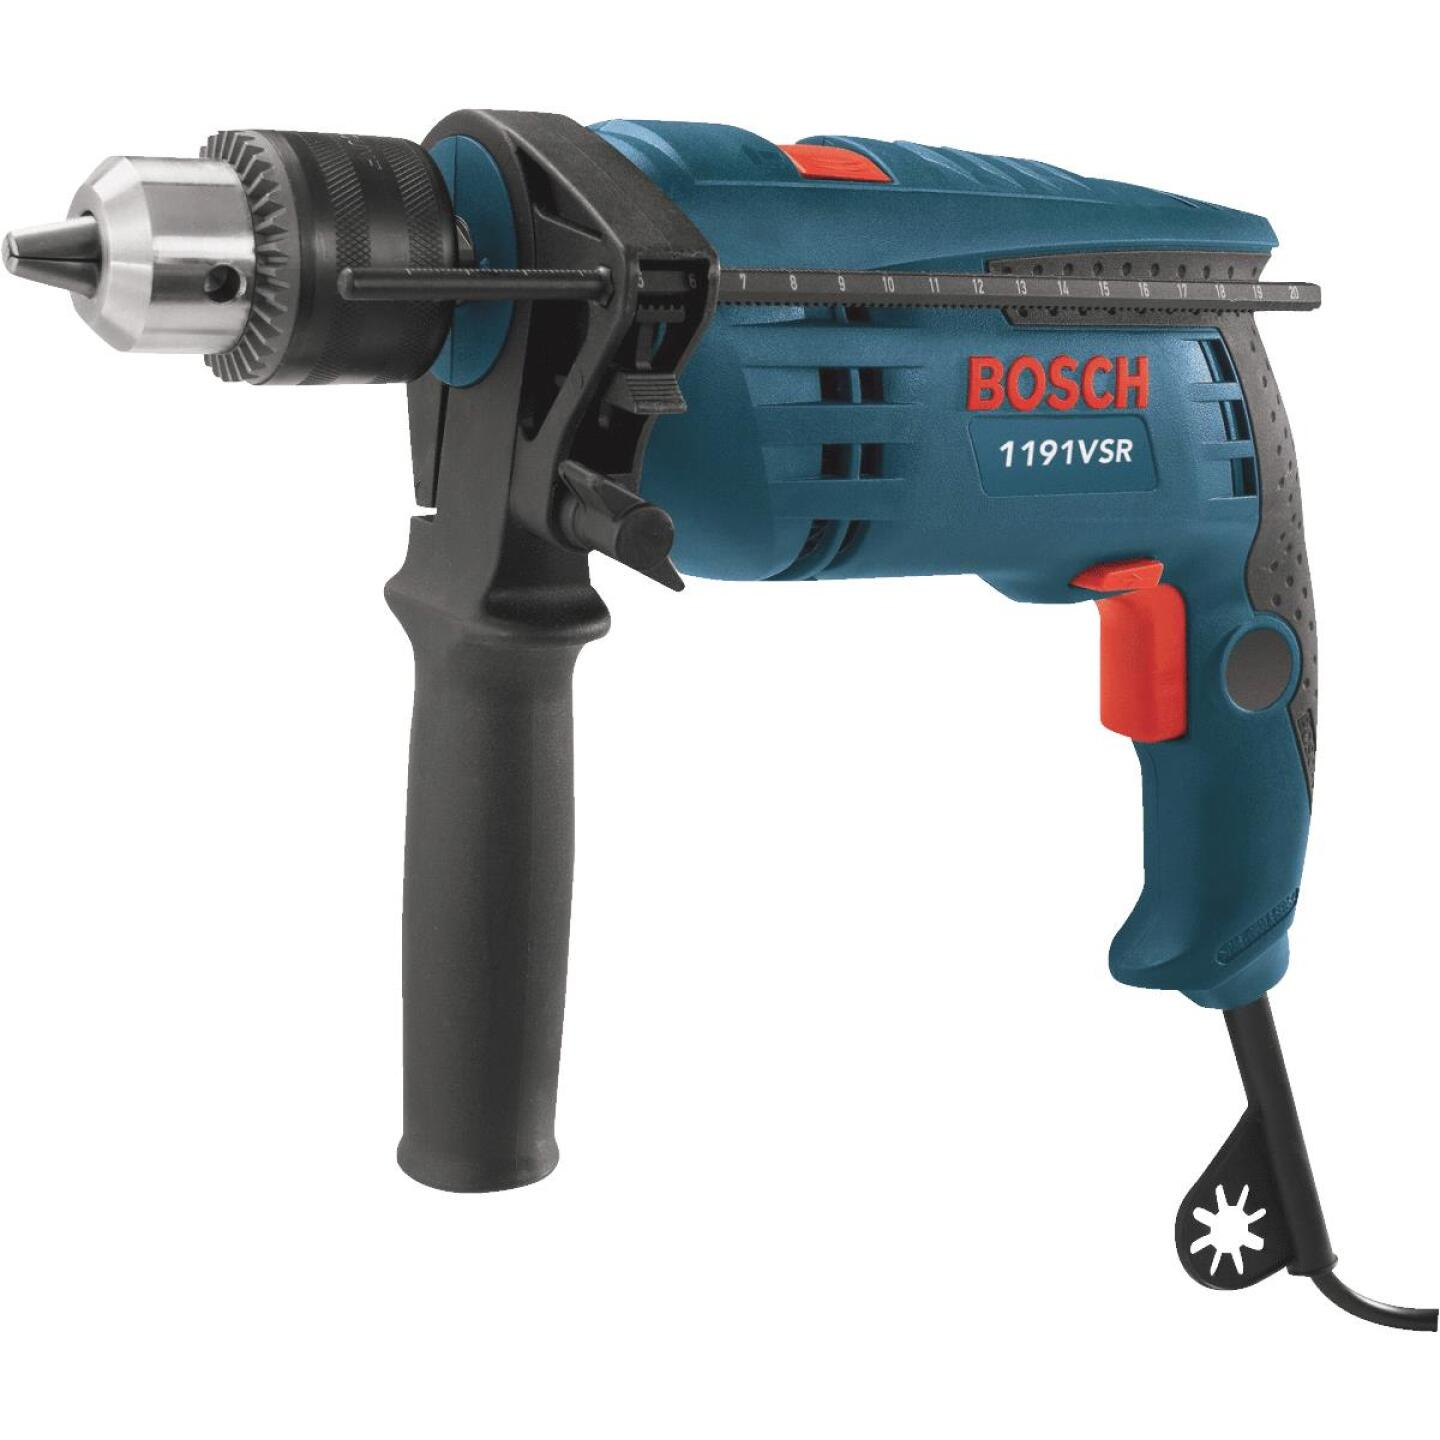 Bosch 1/2 In. Keyed 7.0-Amp VSR Electric Hammer Drill Image 1